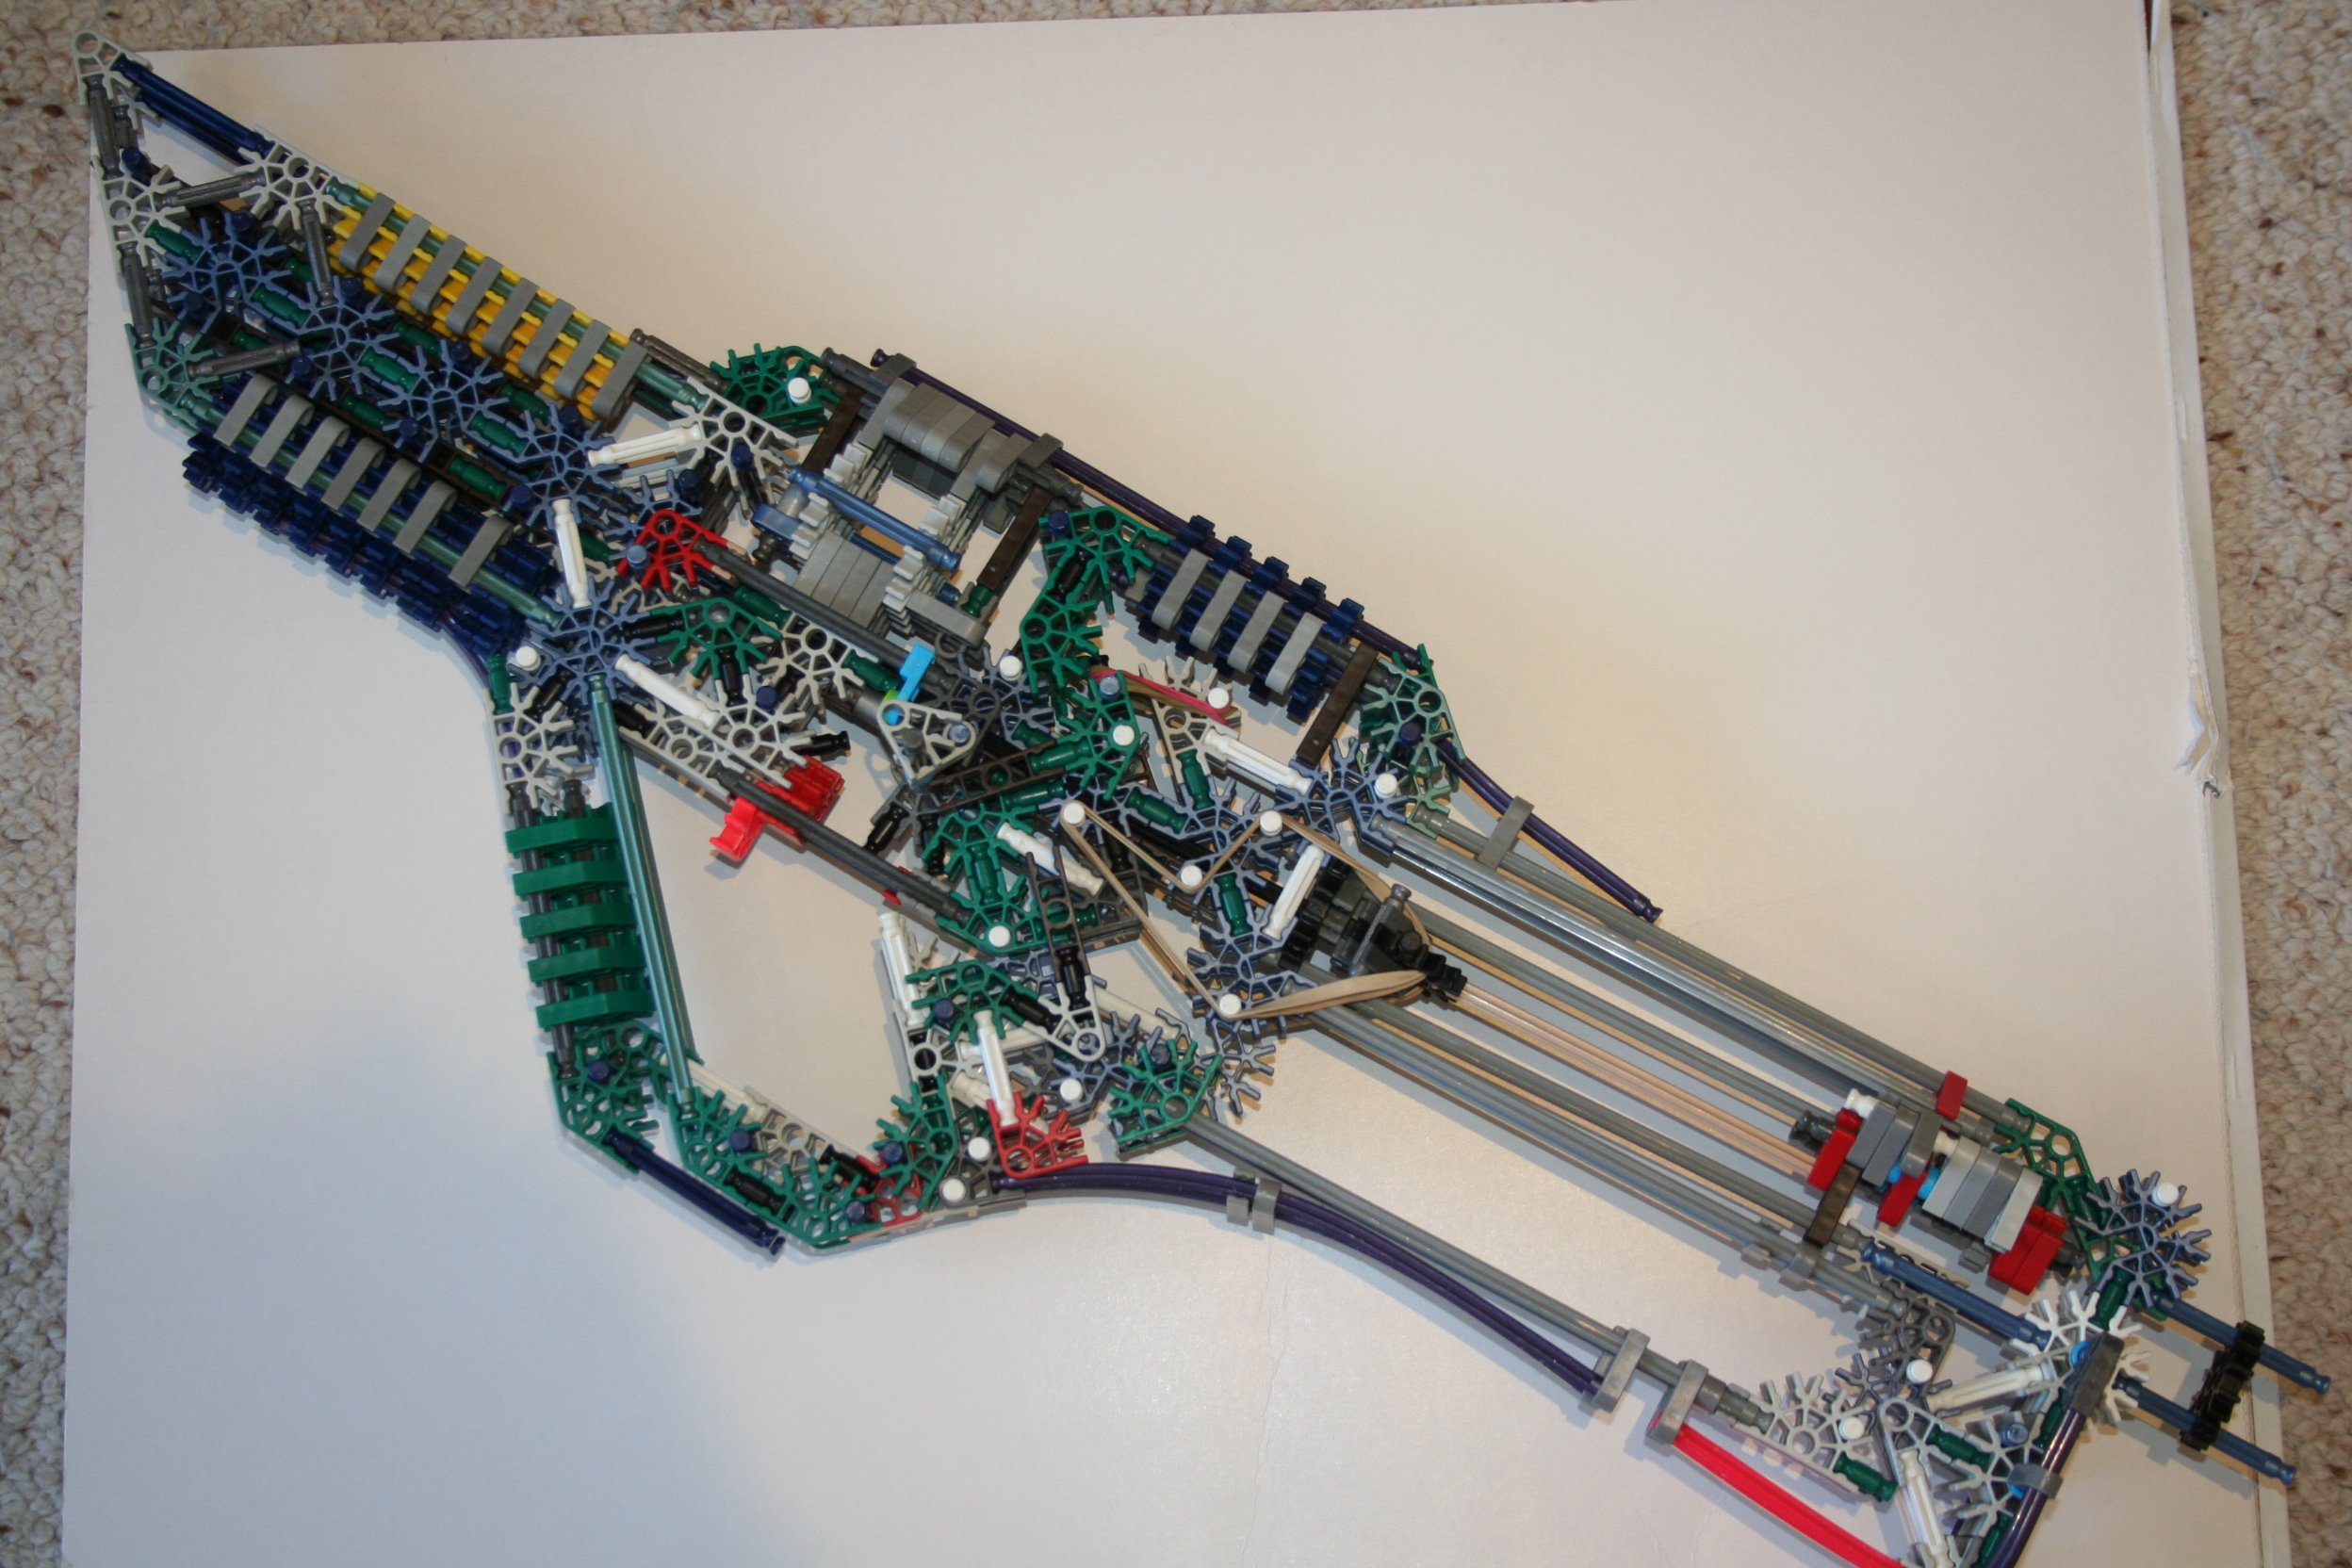 XKR Knex Assault Rifle - big mod of Jager's